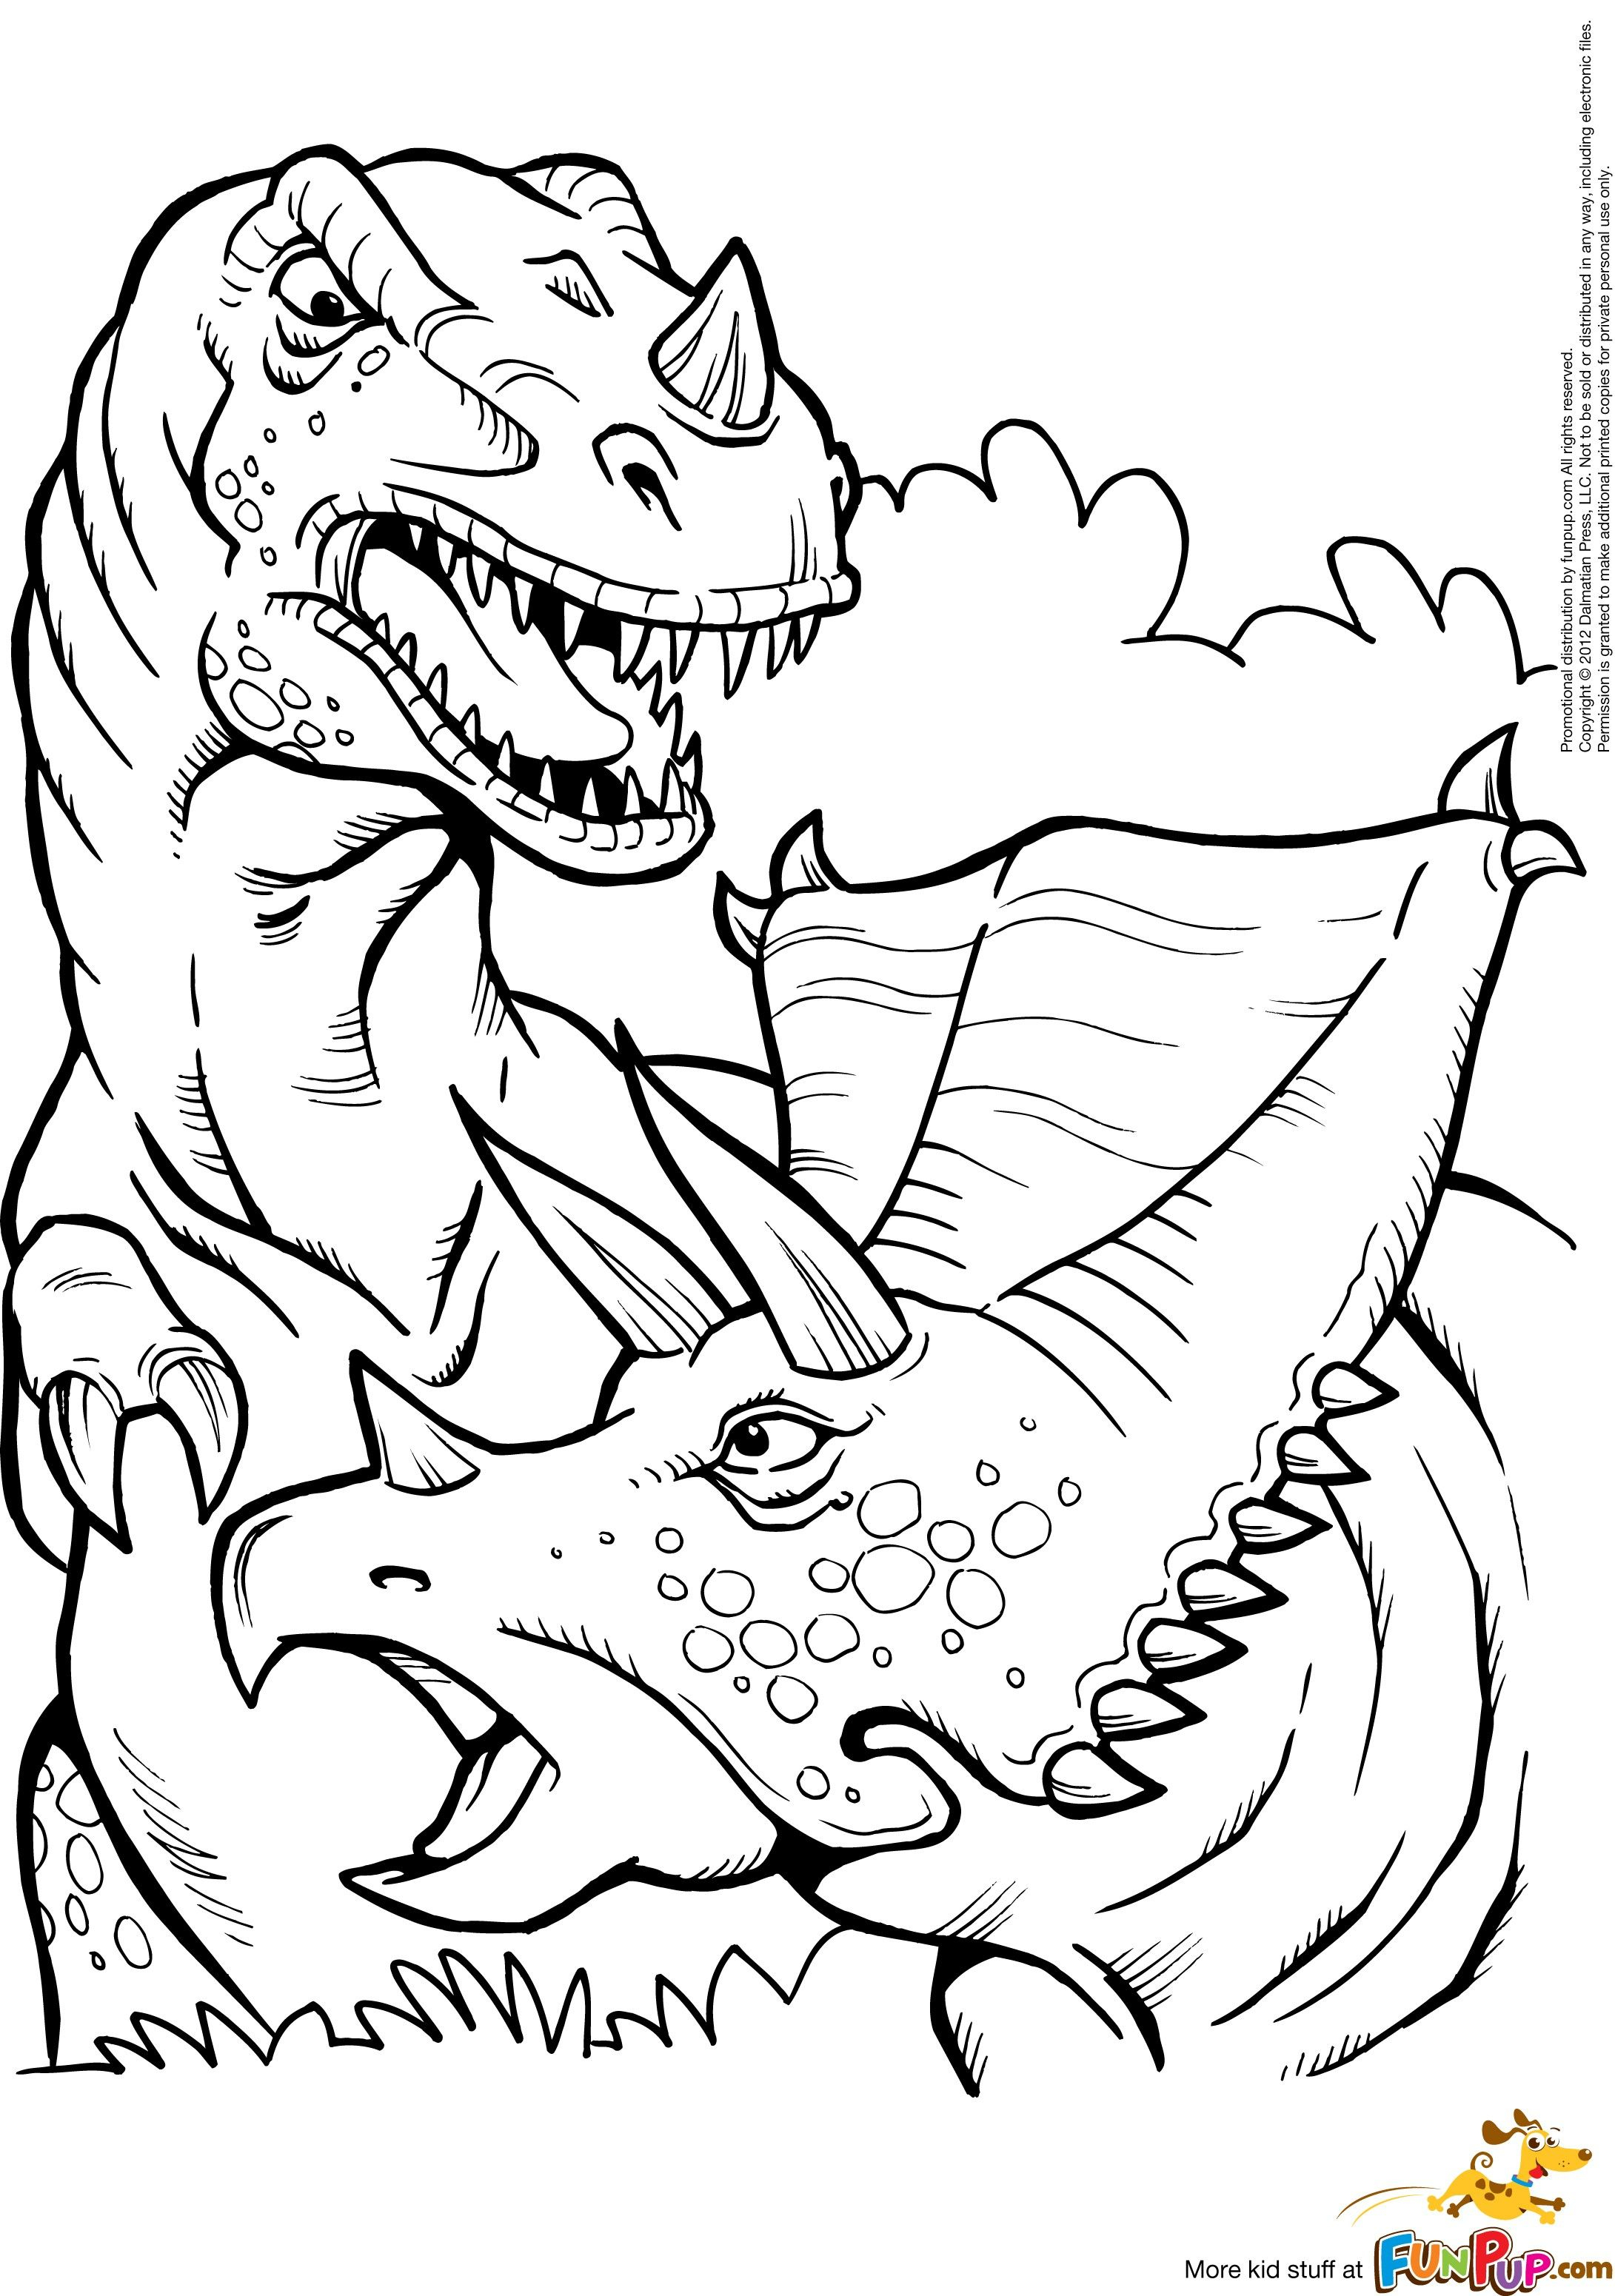 T Rex Coloring Pages  Collection 4h - Free For kids